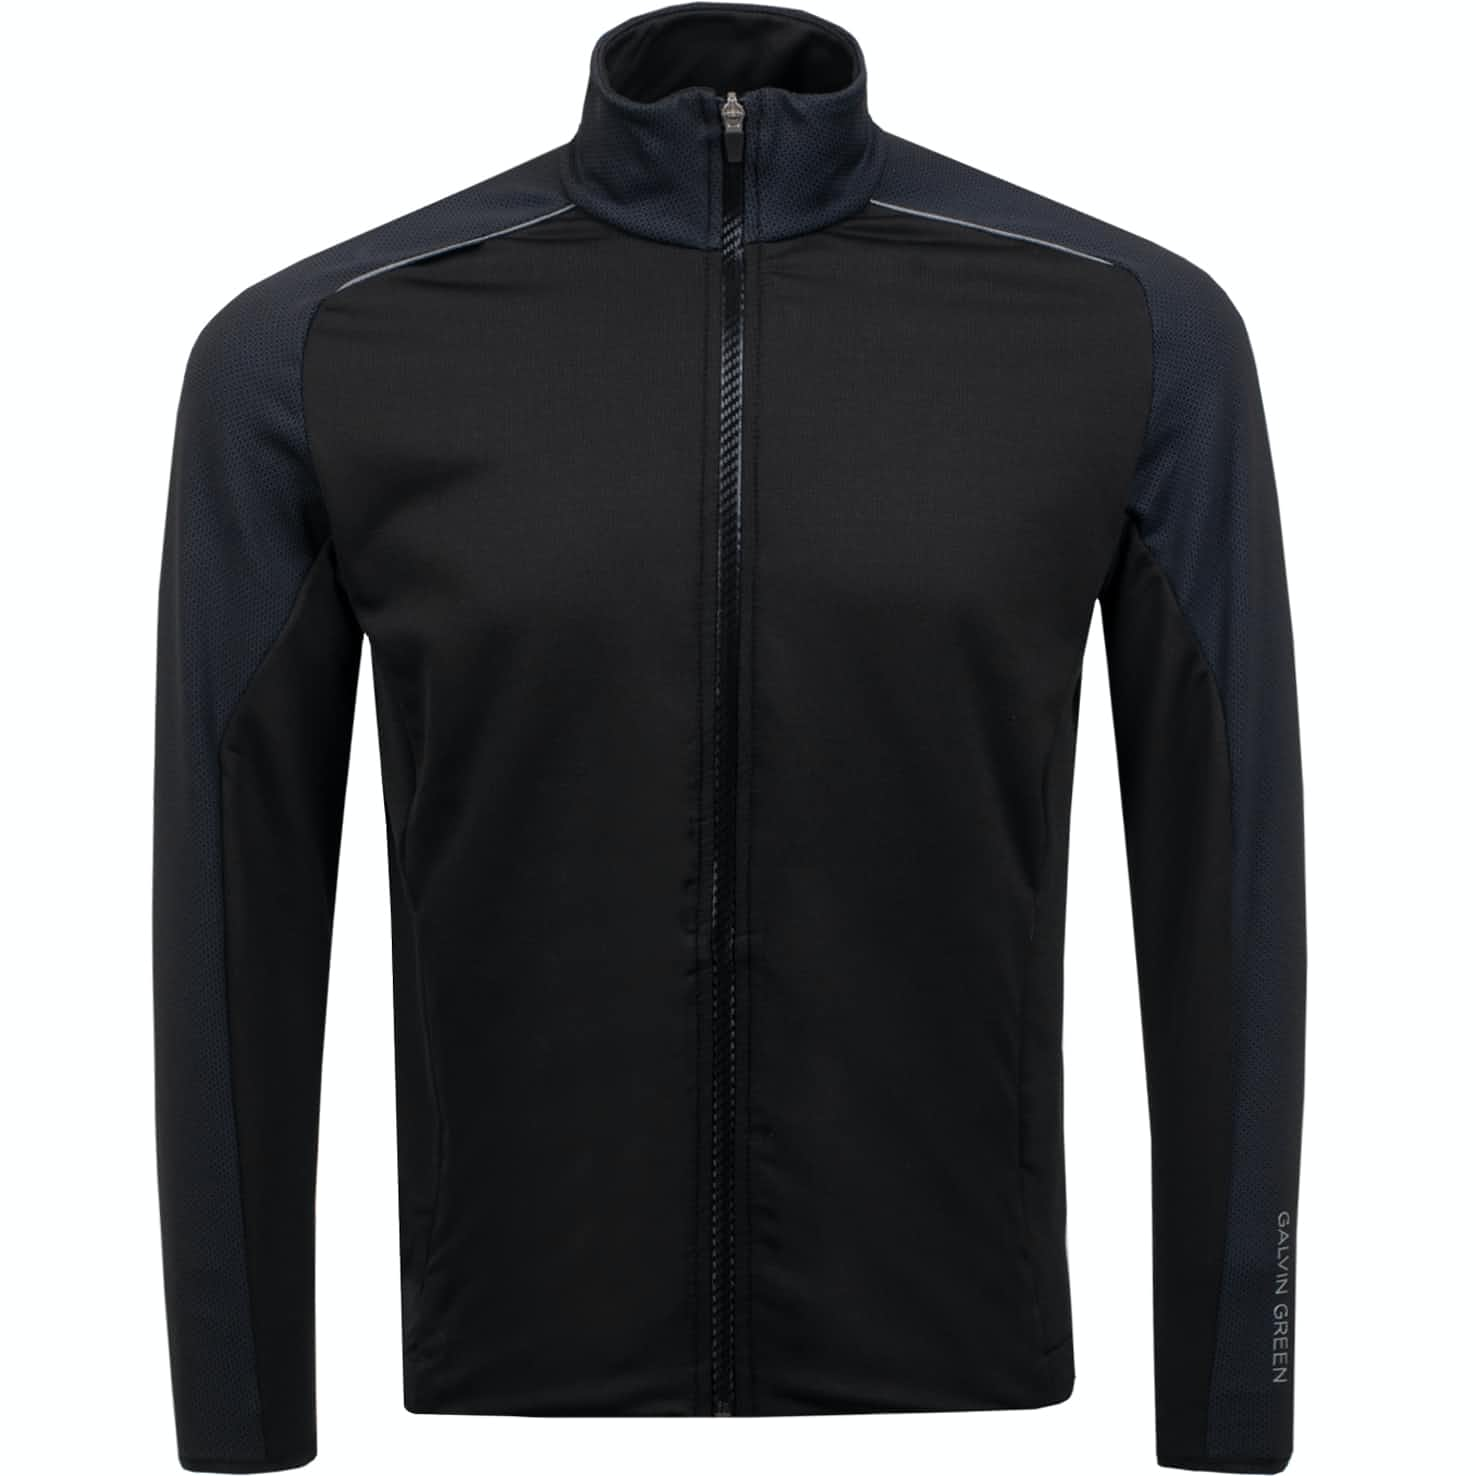 Dave Insula Jacket Carbon Black - SS19